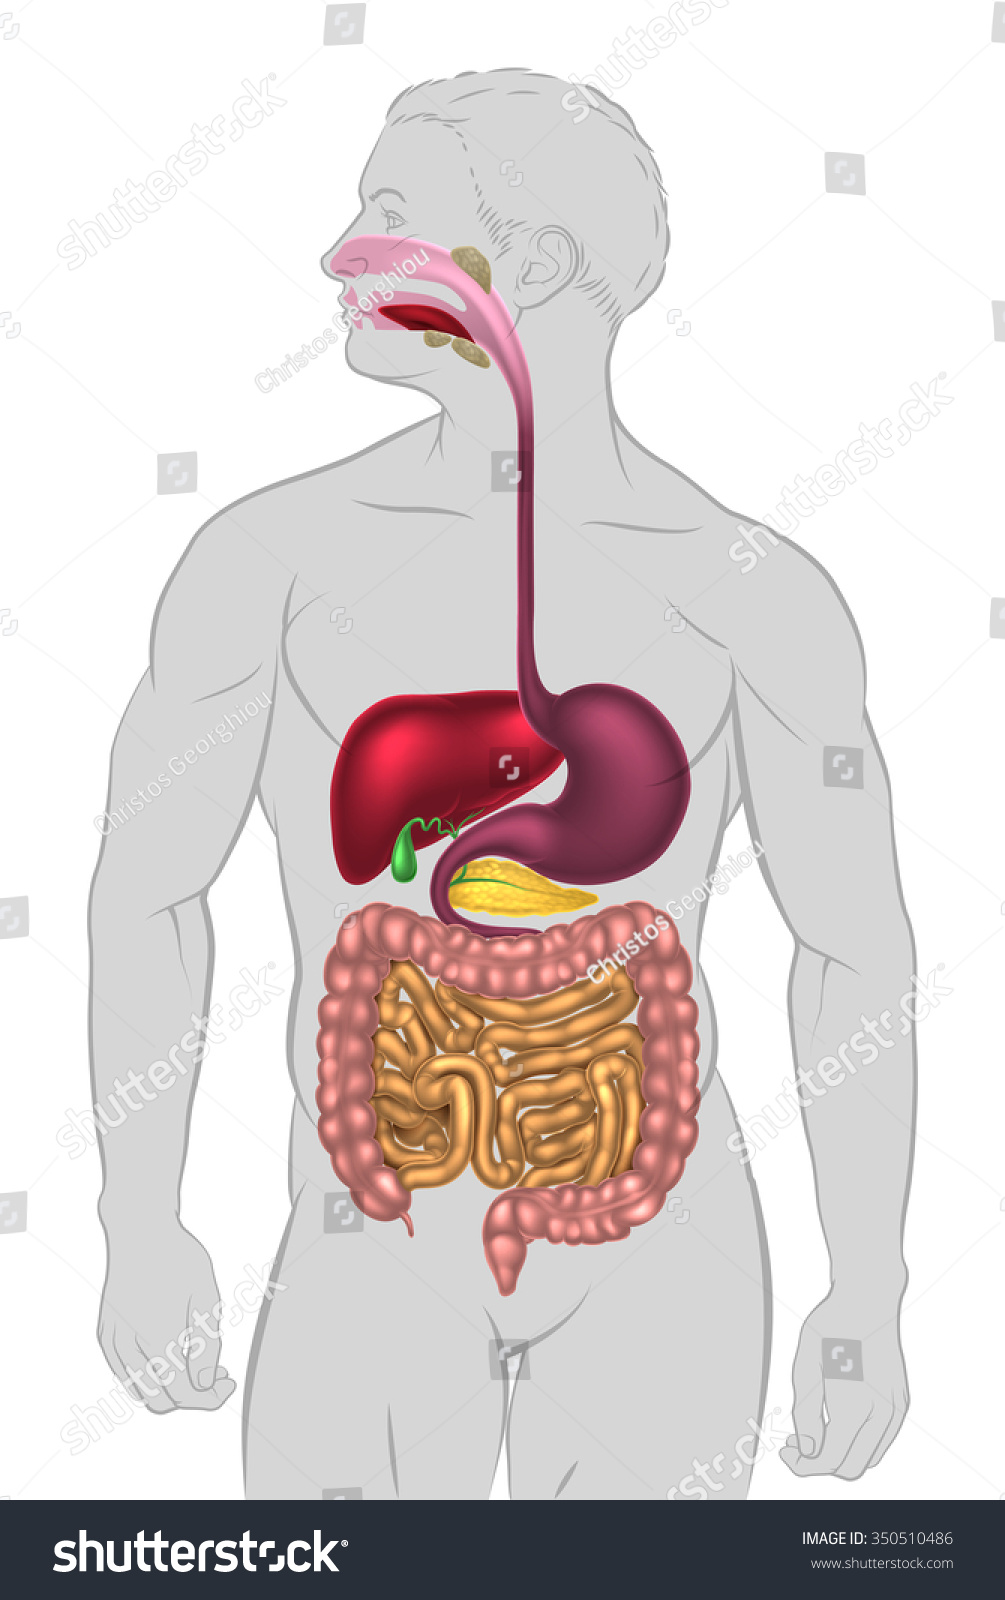 Illustration Human Digestive System Digestive Tract Stock Vector